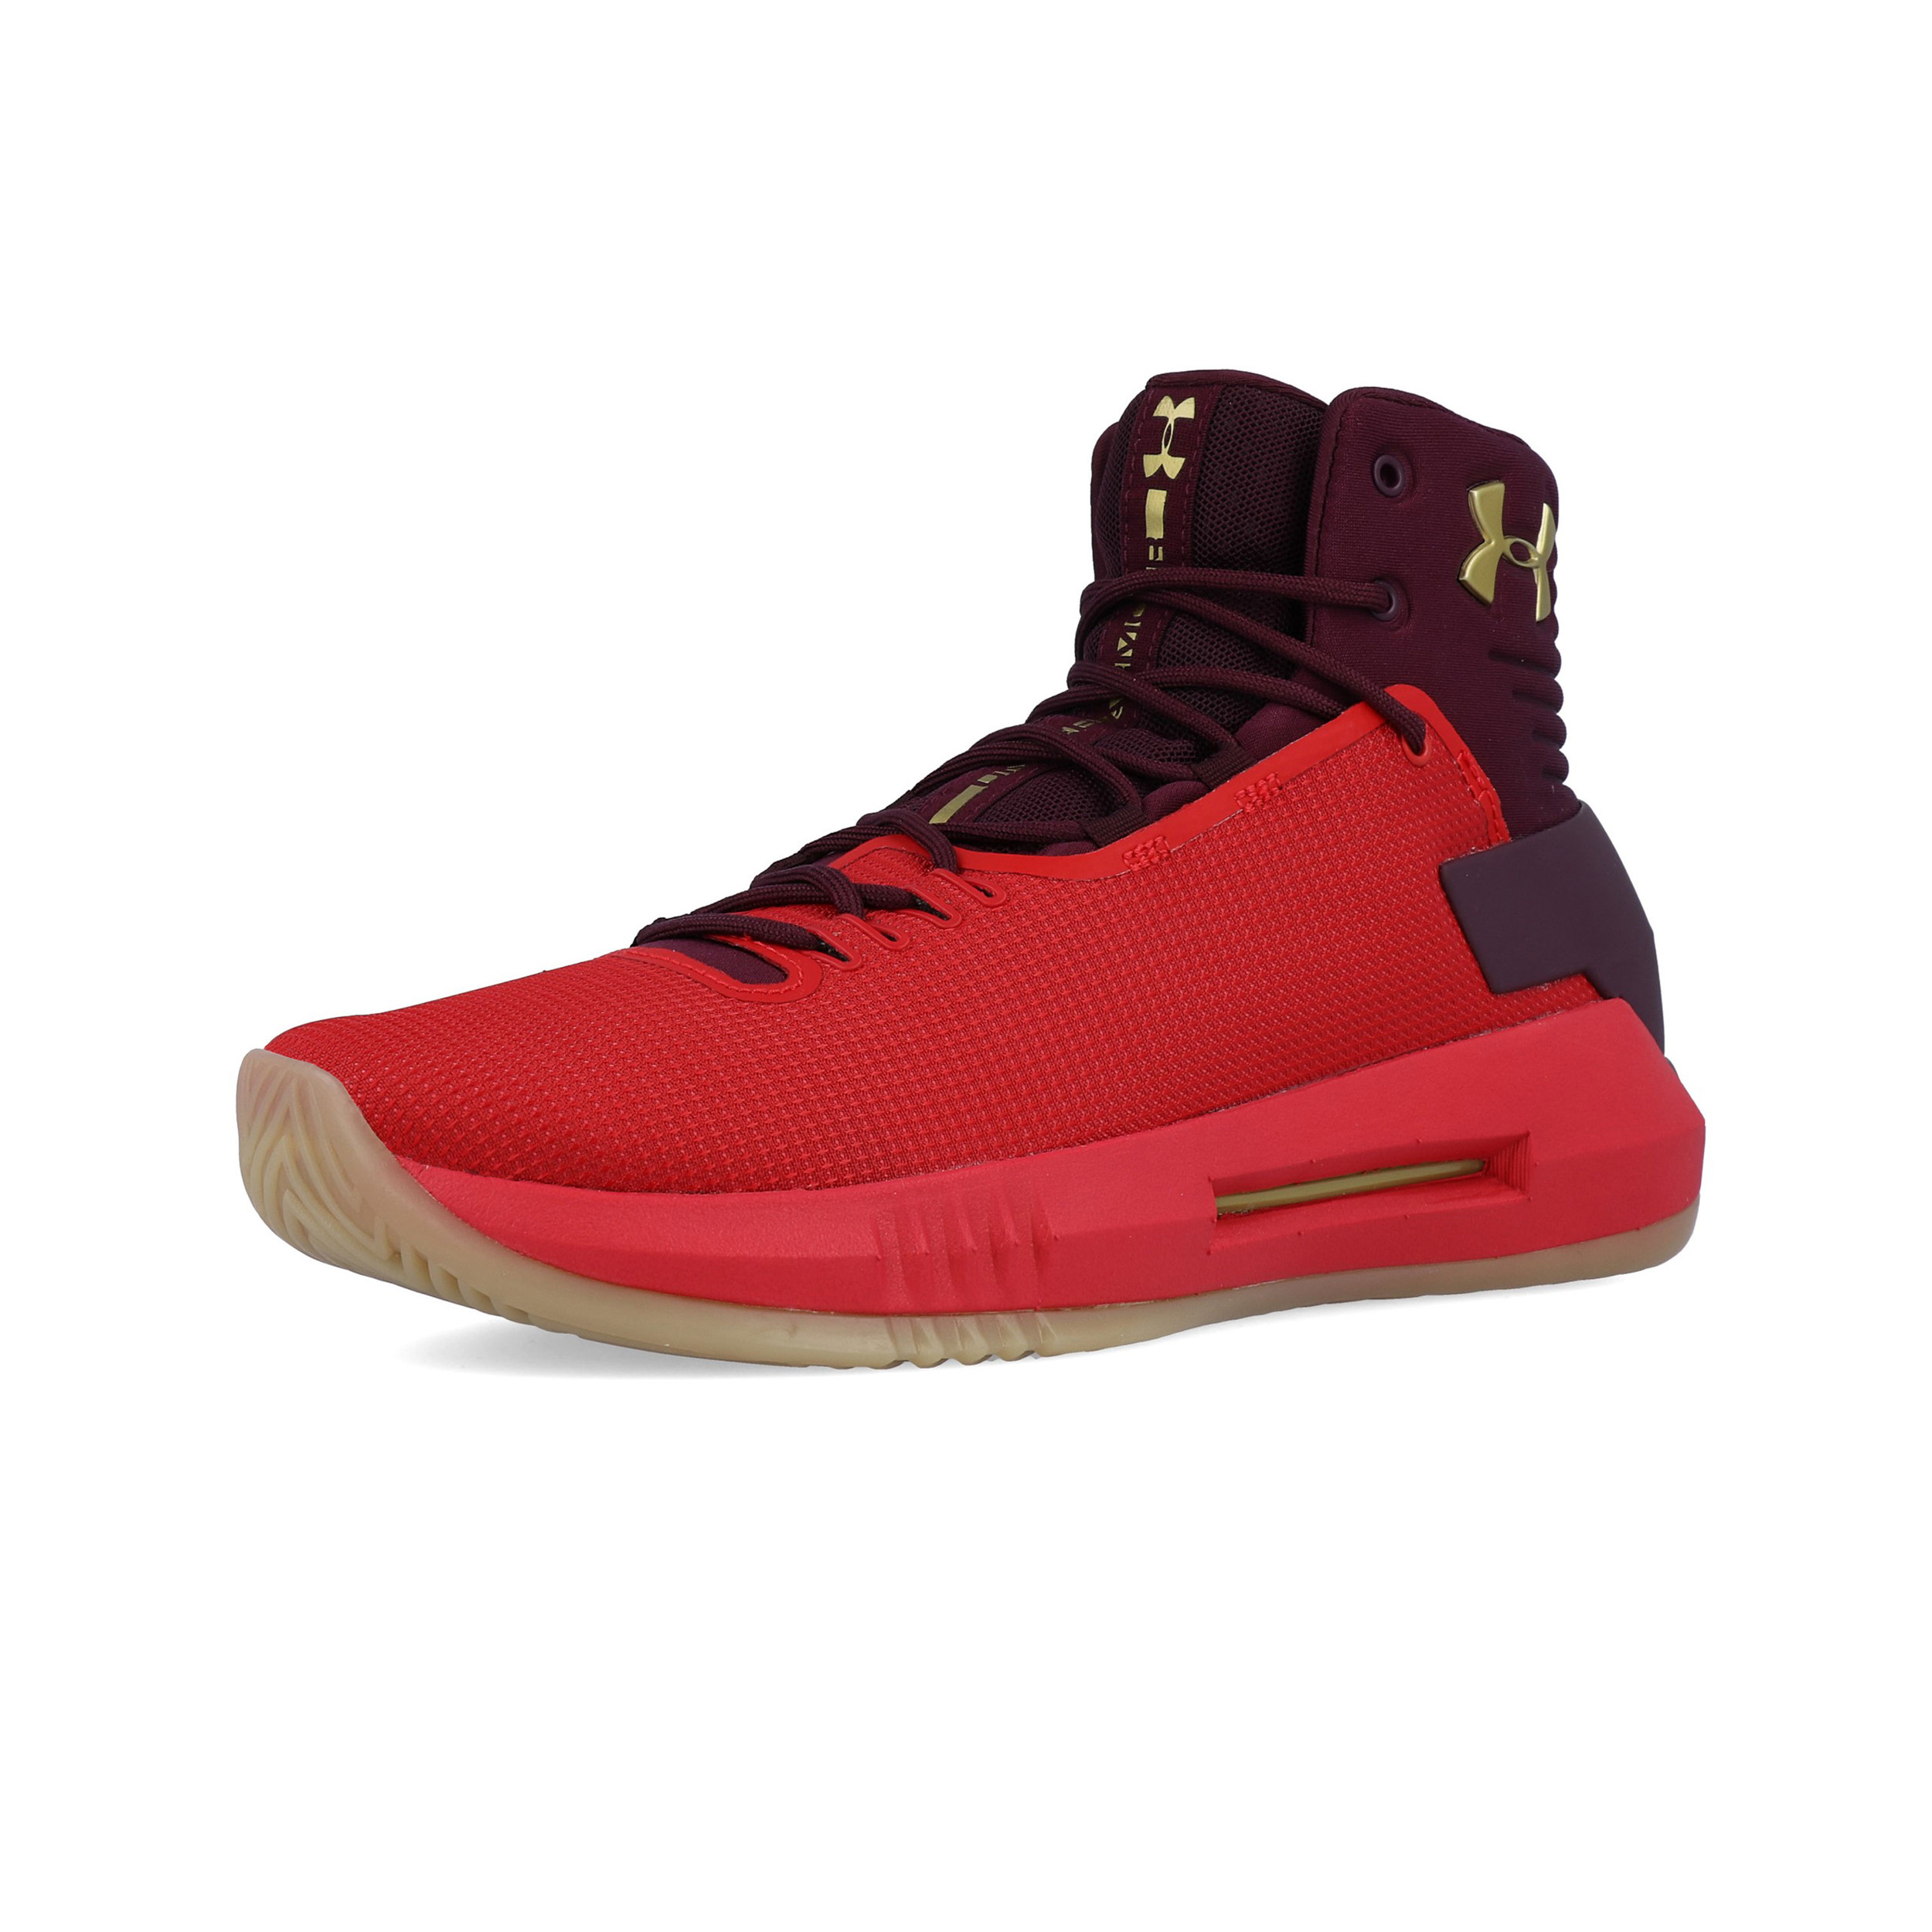 6549efcc51 Details about Under Armour Mens Drive 4 Basketball Shoes Red Sports  Breathable Lightweight